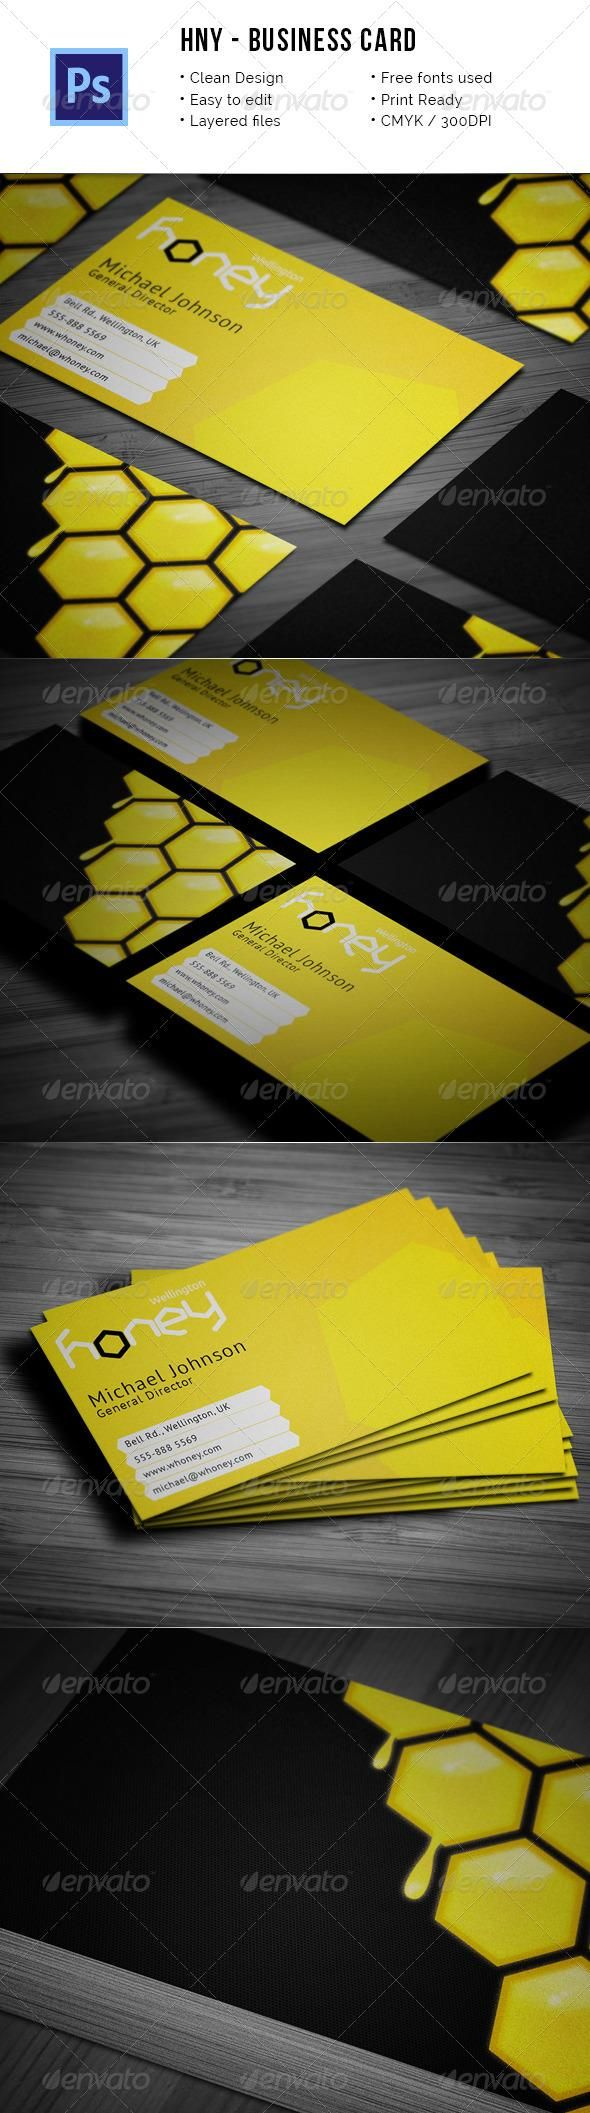 best 25 company business cards ideas on pinterest business